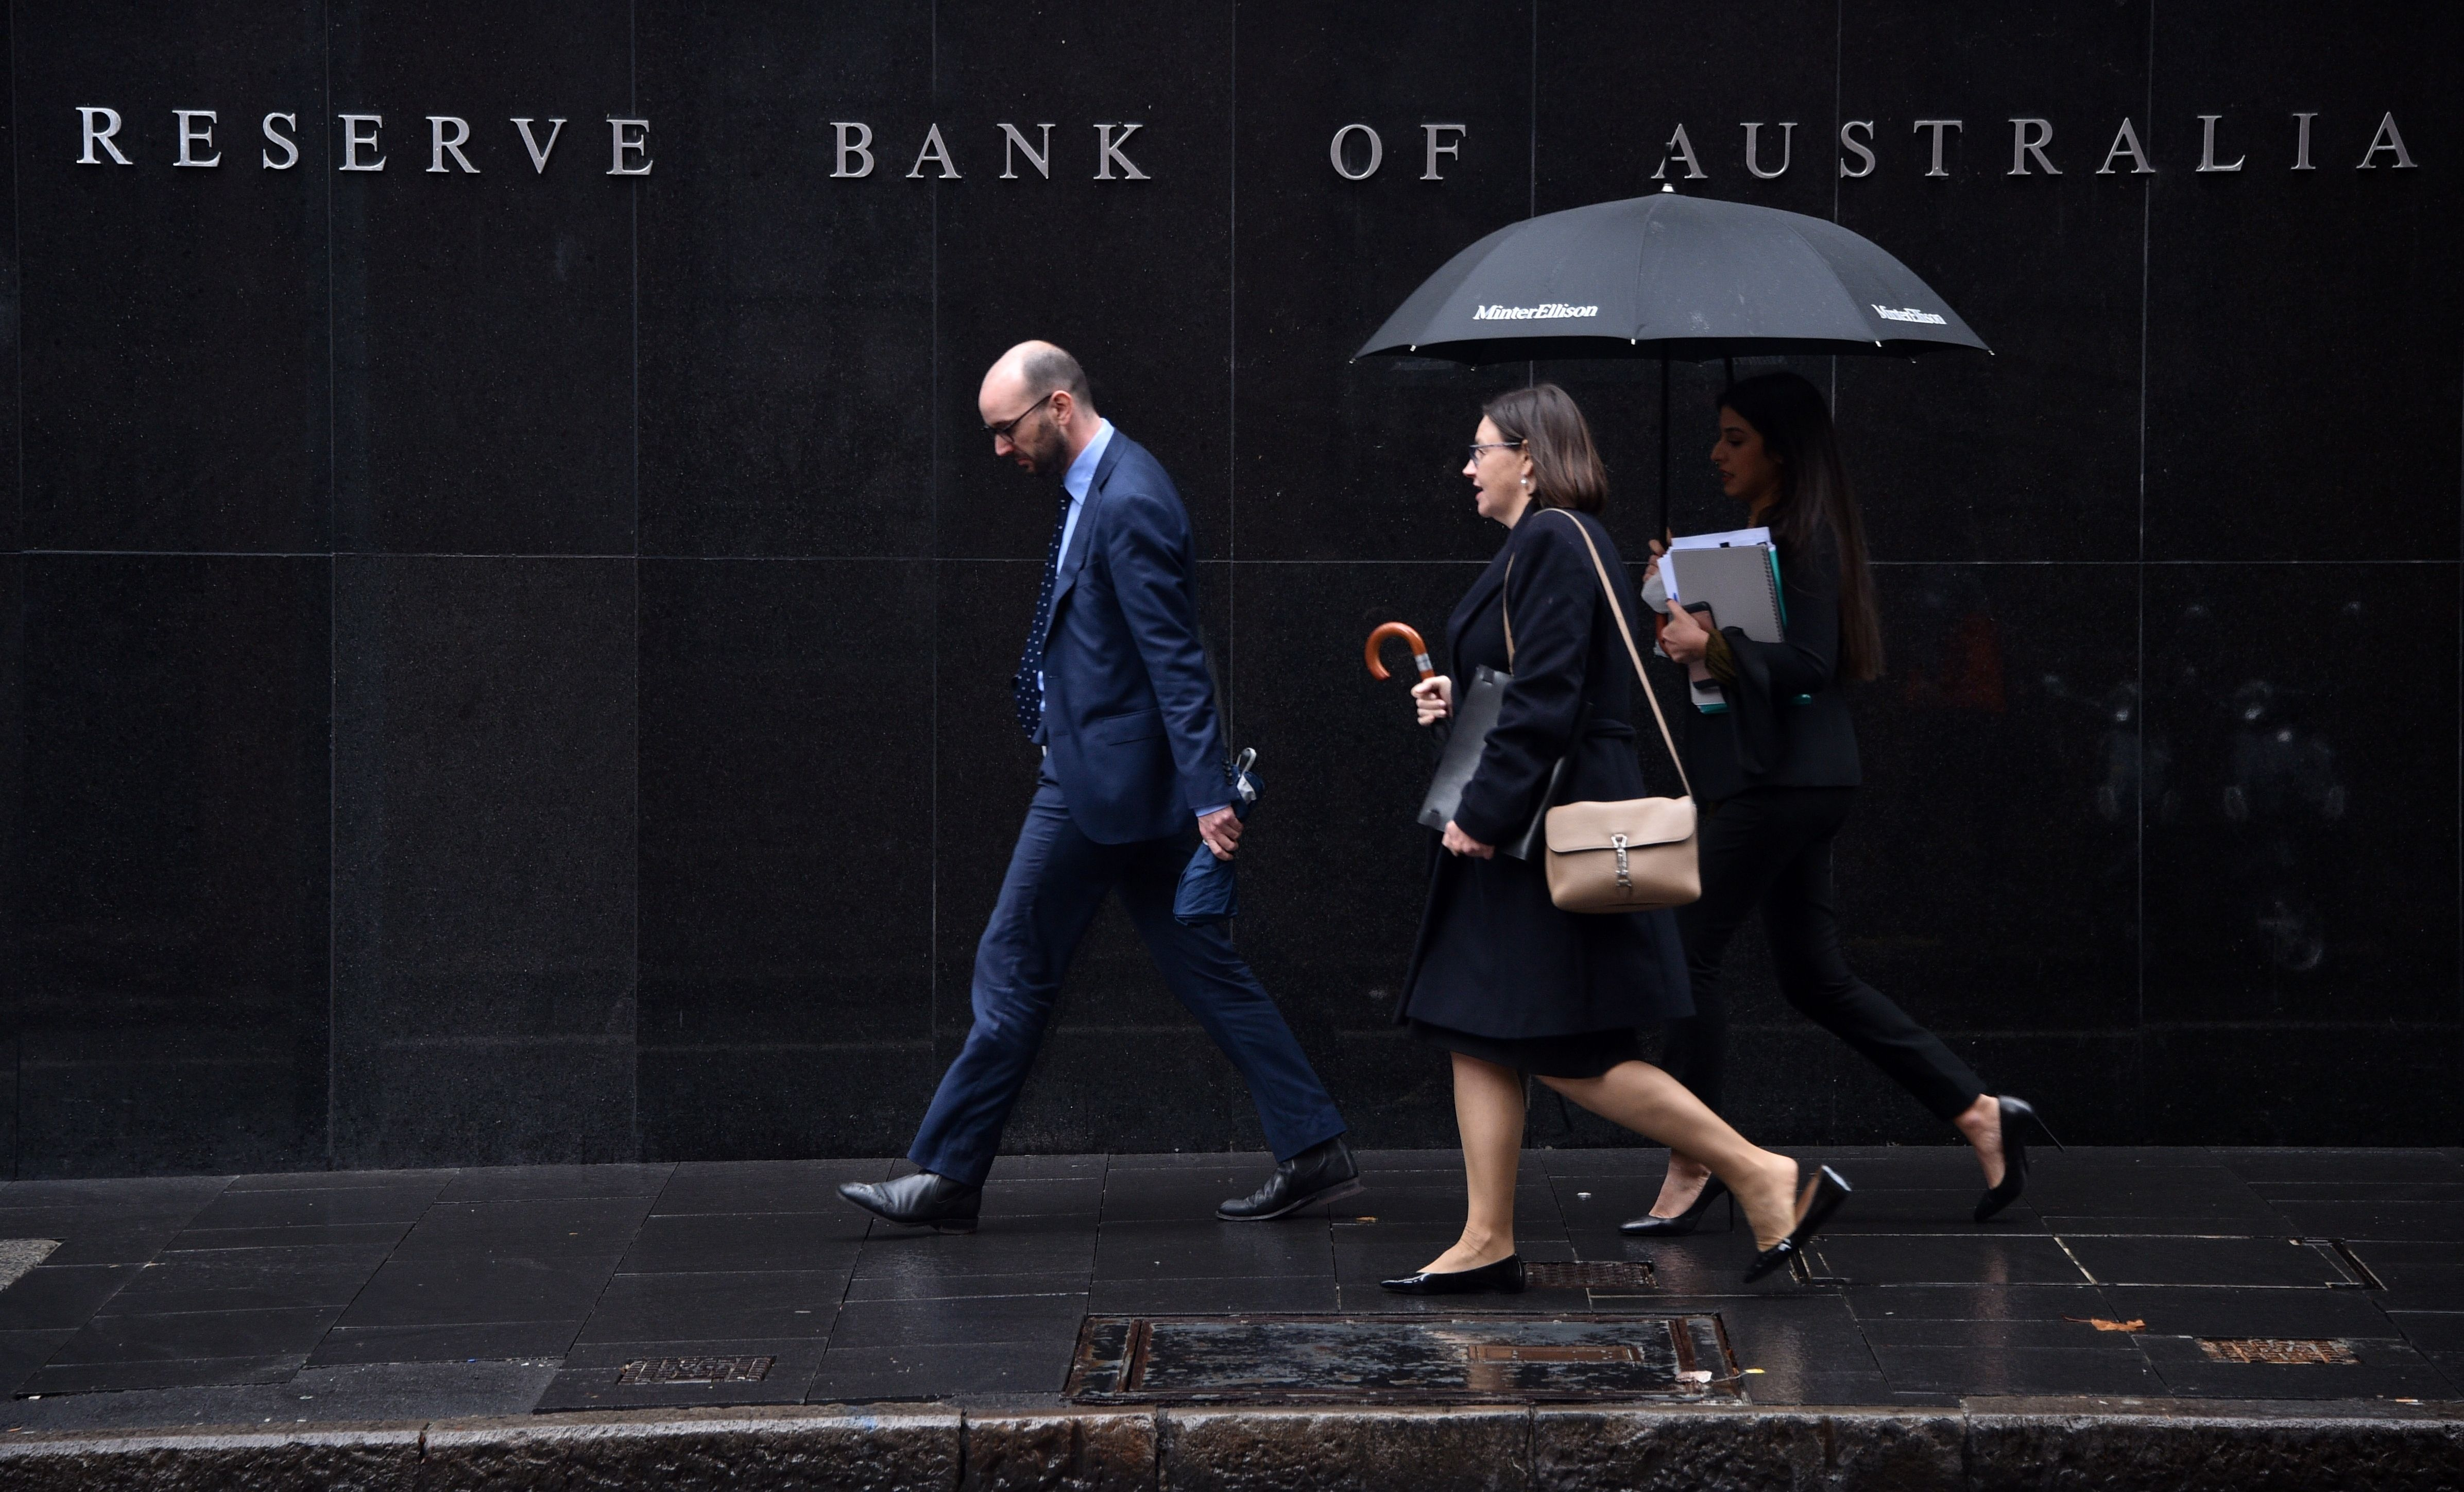 Pedestrians walks past the Reserve Bank of Australia in Sydney on June 4, 2019. - The Reserve Bank cut interest rates by 25 basis points to a historic low of 1.25 percent, as the pace of growth slowed to levels not seen since the global financial crisis. (Photo by PETER PARKS / AFP)        (Photo credit should read PETER PARKS/AFP/Getty Images)